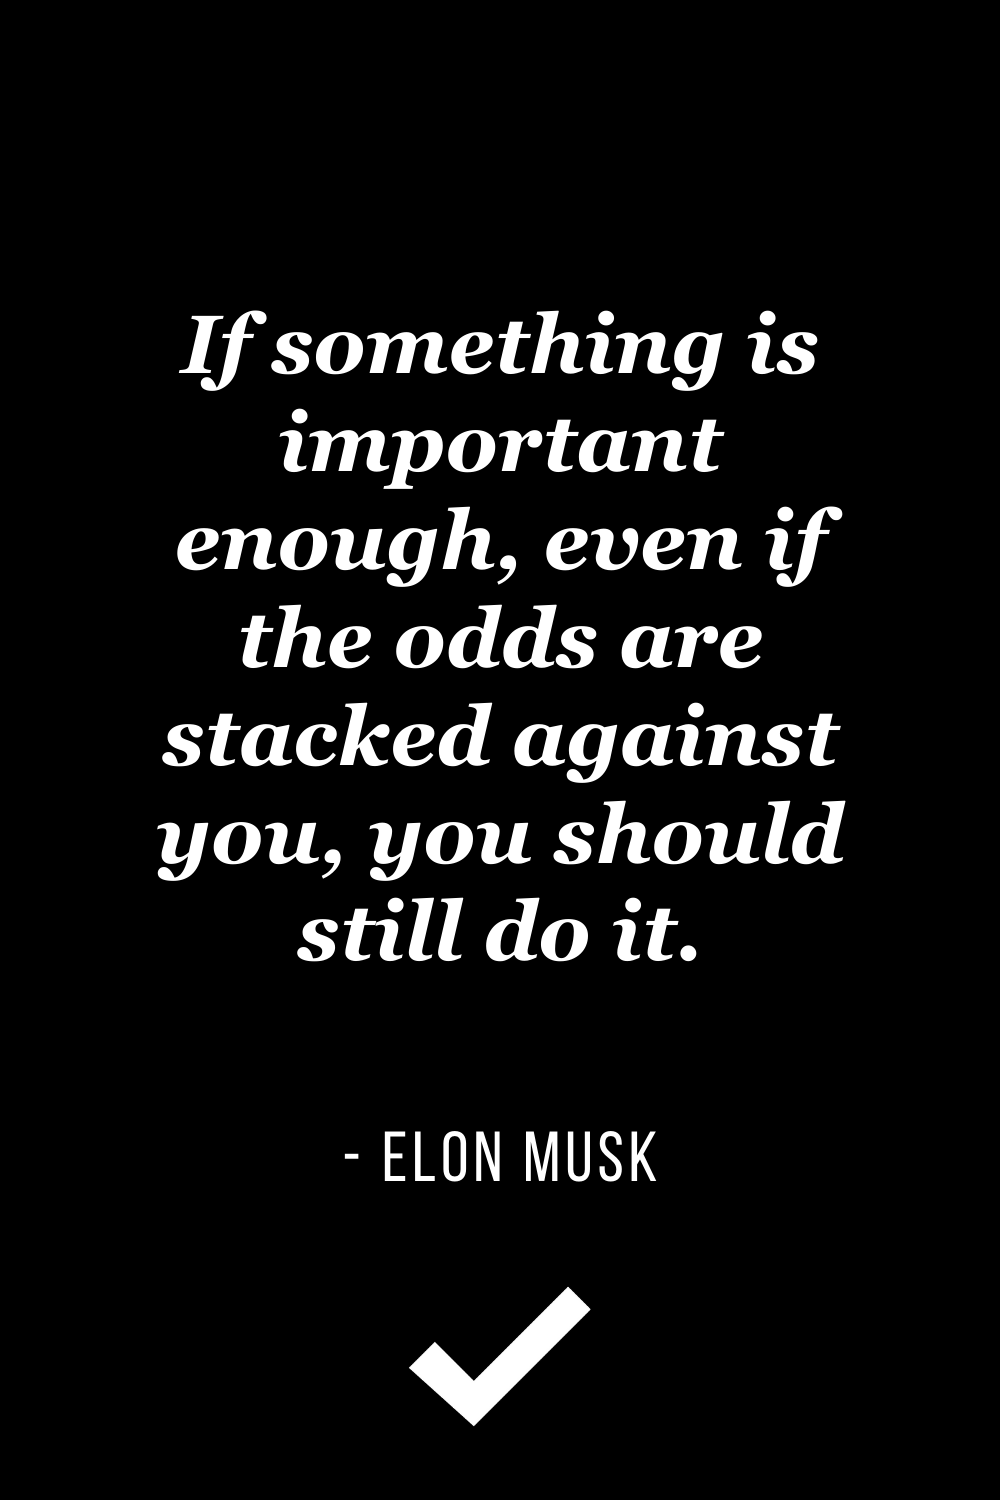 """""""If something is important enough, even if the odds are stacked against you, you should still do it."""" – Elon Musk"""